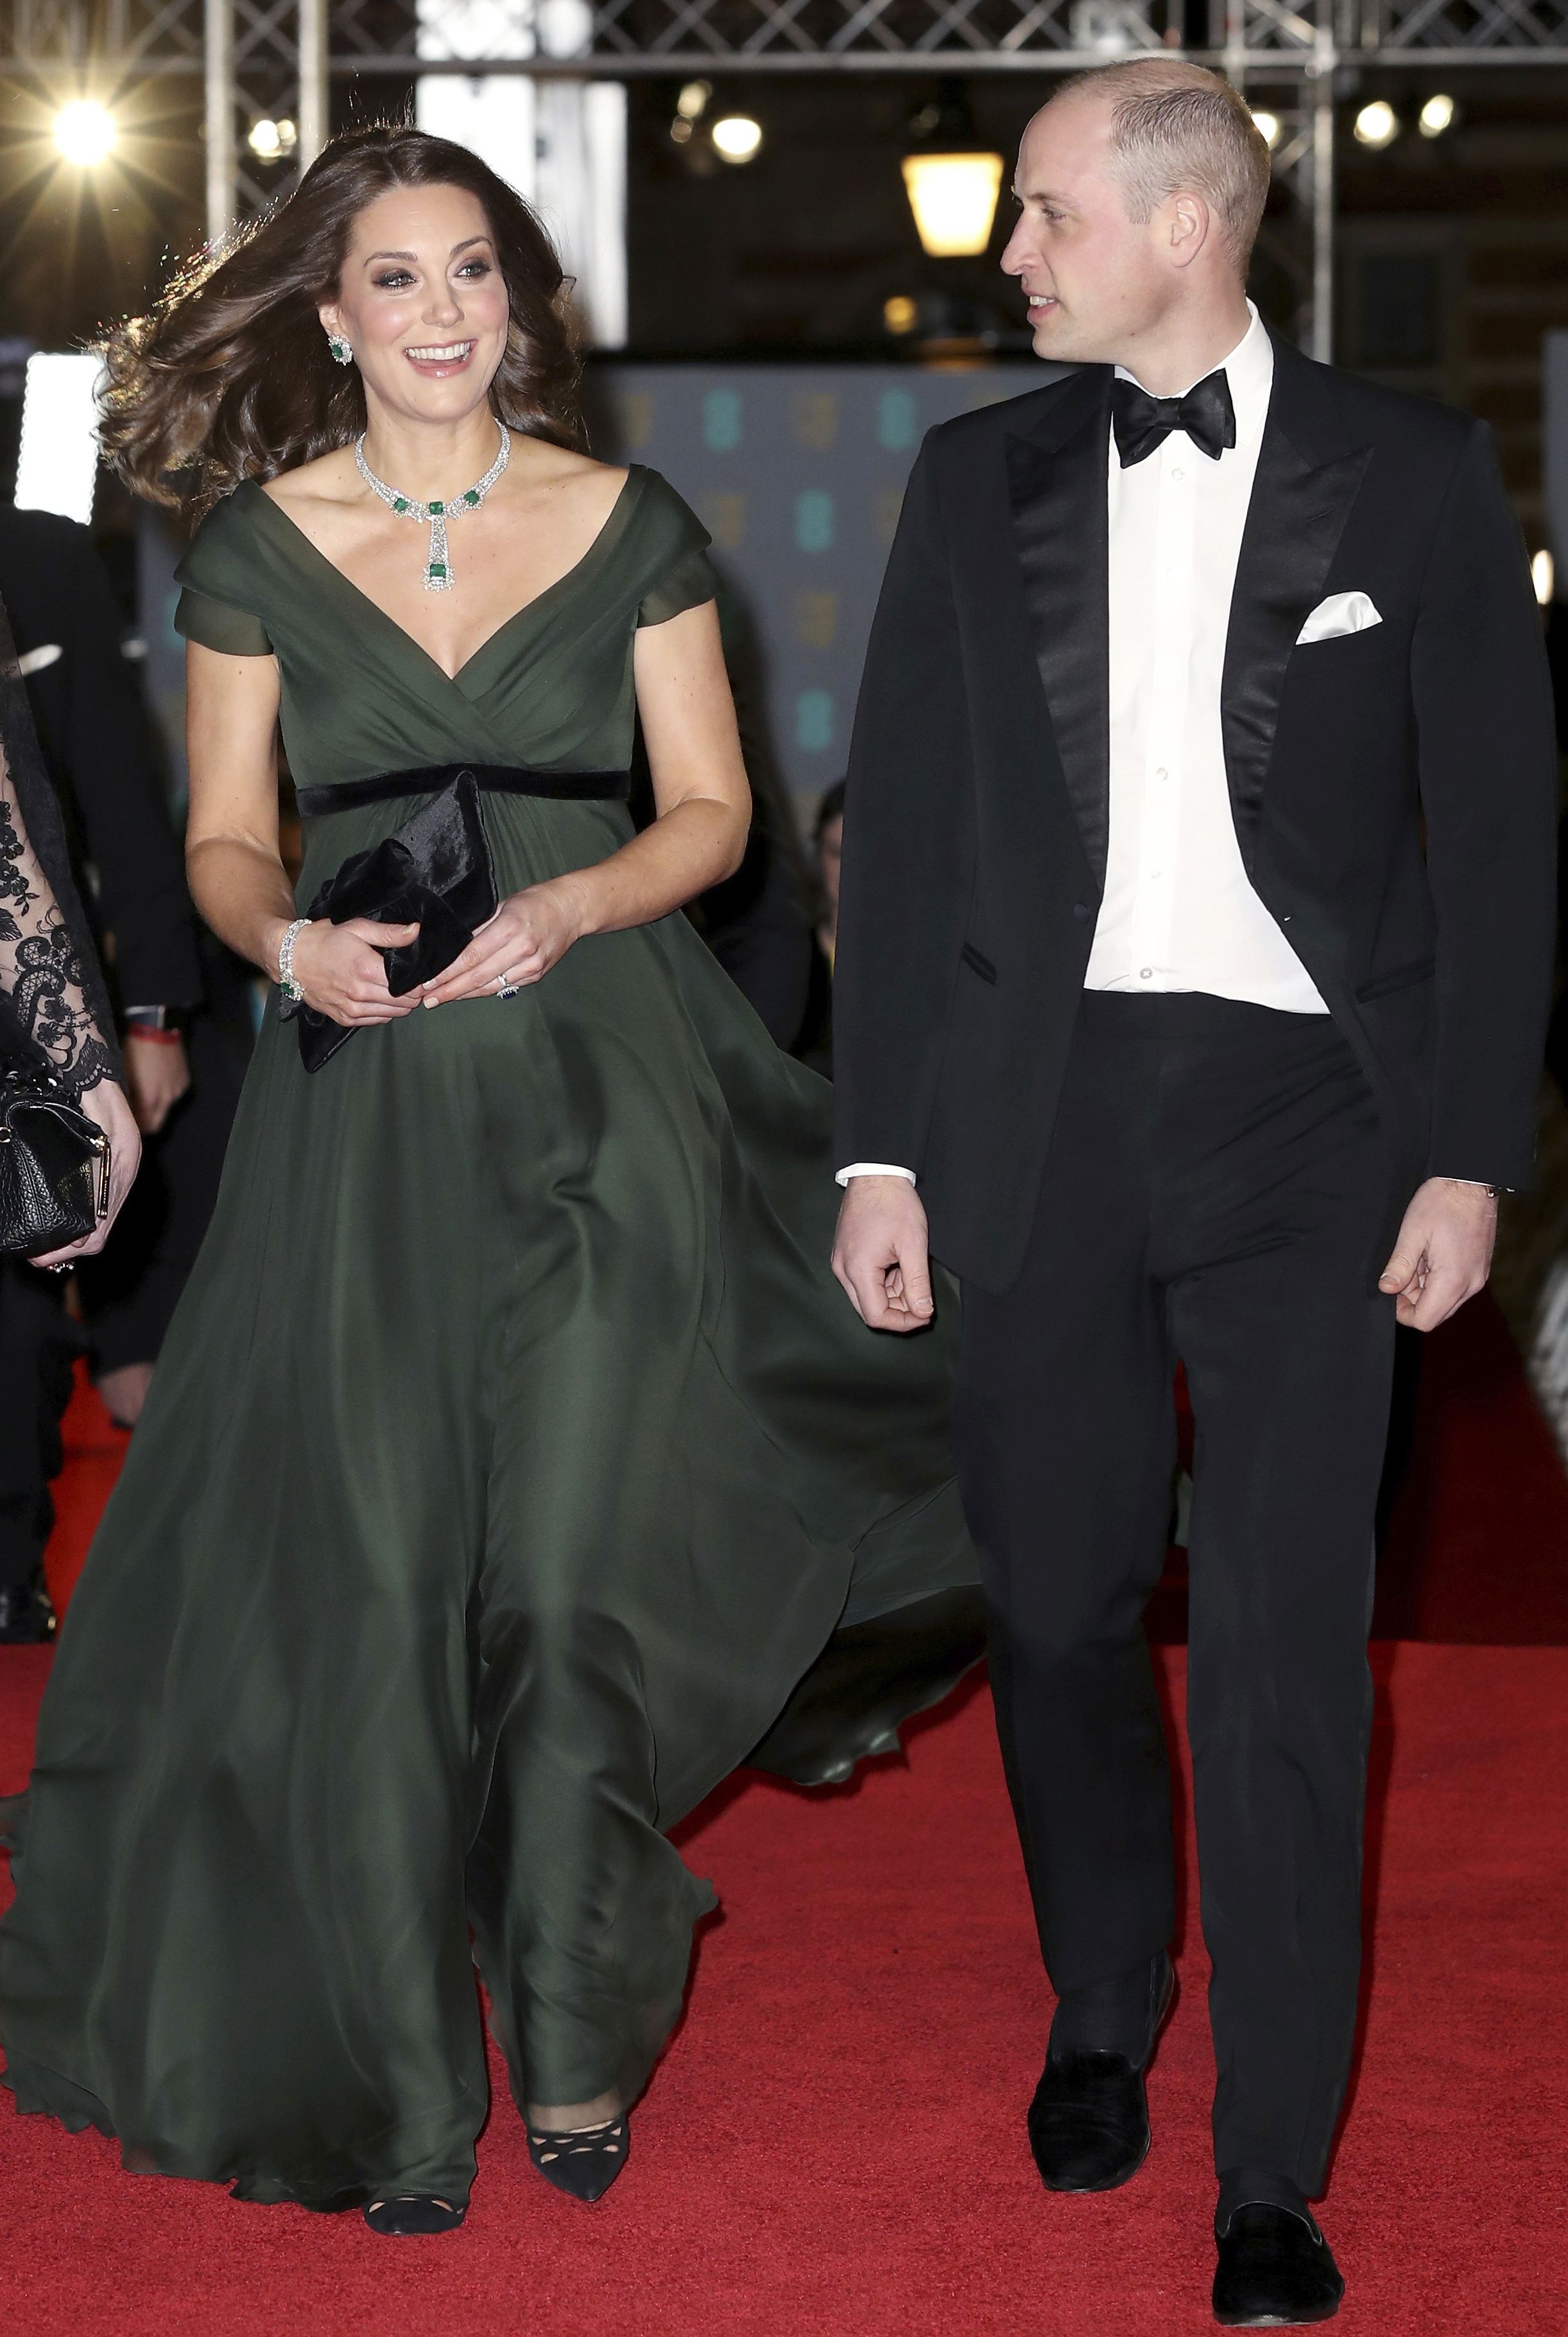 <div class='meta'><div class='origin-logo' data-origin='AP'></div><span class='caption-text' data-credit='AP'>Britain's Prince William and Kate, Duchess of Cambridge arrive for the BAFTA 2018 Awards in London, Sunday, Feb. 18, 2018.</span></div>